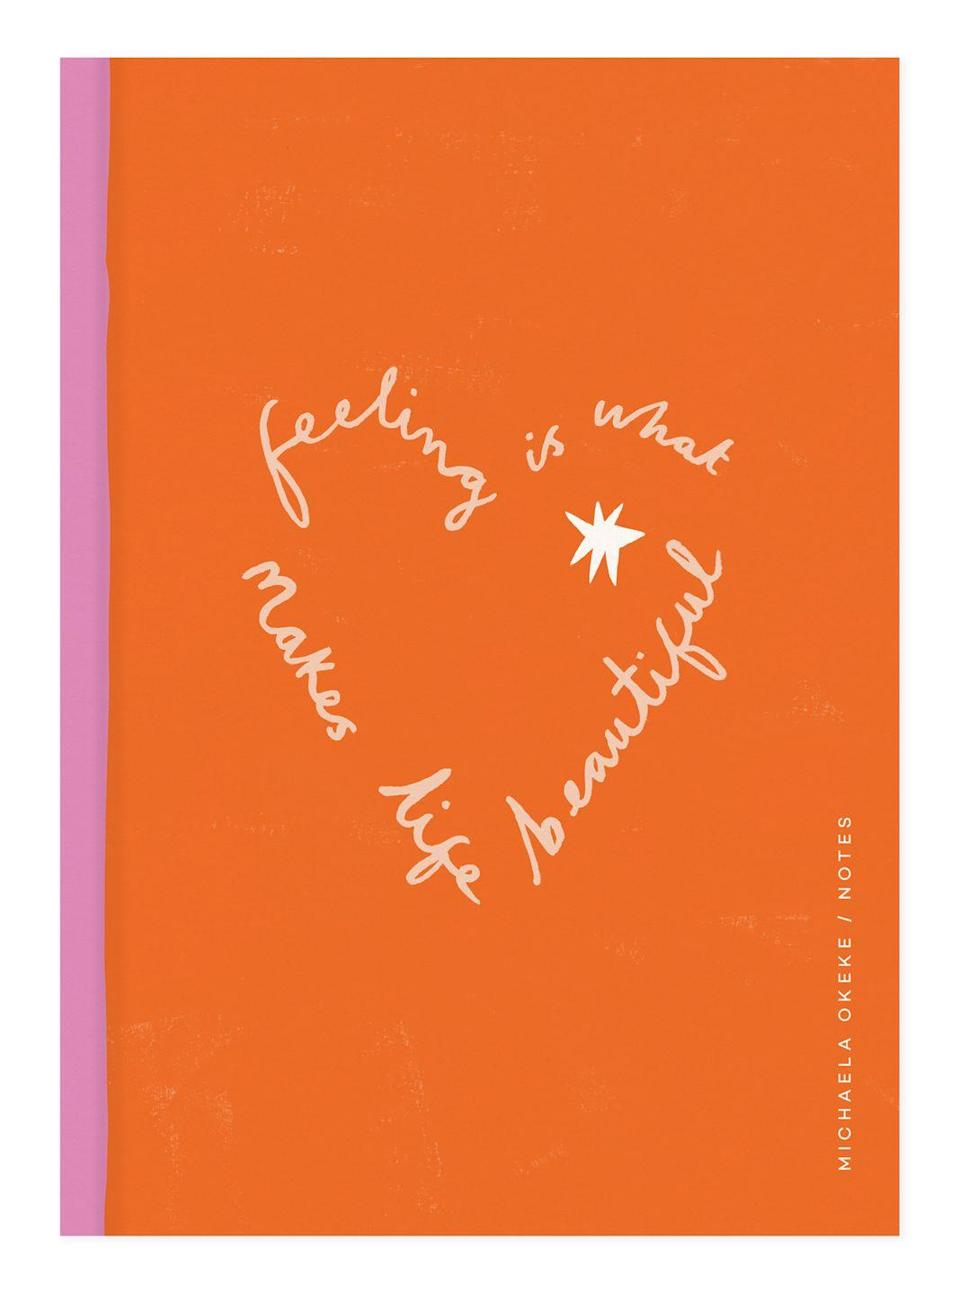 """<p>Papier has teamed up with the model and mental-health activist Adwoa Aboah to create a limited-edition notebook and guided journal for International Women's Day. </p><p>All of the profits throughout March will be donated to Gurls Talk, a community-led not-for-profit organisation dedicated to promoting the wellbeing of adolescent gxrls and young womxn.</p><p><a class=""""link rapid-noclick-resp"""" href=""""https://go.redirectingat.com?id=127X1599956&url=https%3A%2F%2Fwww.papier.com&sref=https%3A%2F%2Fwww.townandcountrymag.com%2Fuk%2Fstyle%2Ffashion%2Fg35444586%2F15-brands-to-support-this-international-womens-day%2F"""" rel=""""nofollow noopener"""" target=""""_blank"""" data-ylk=""""slk:SHOP HERE"""">SHOP HERE</a><br></p>"""